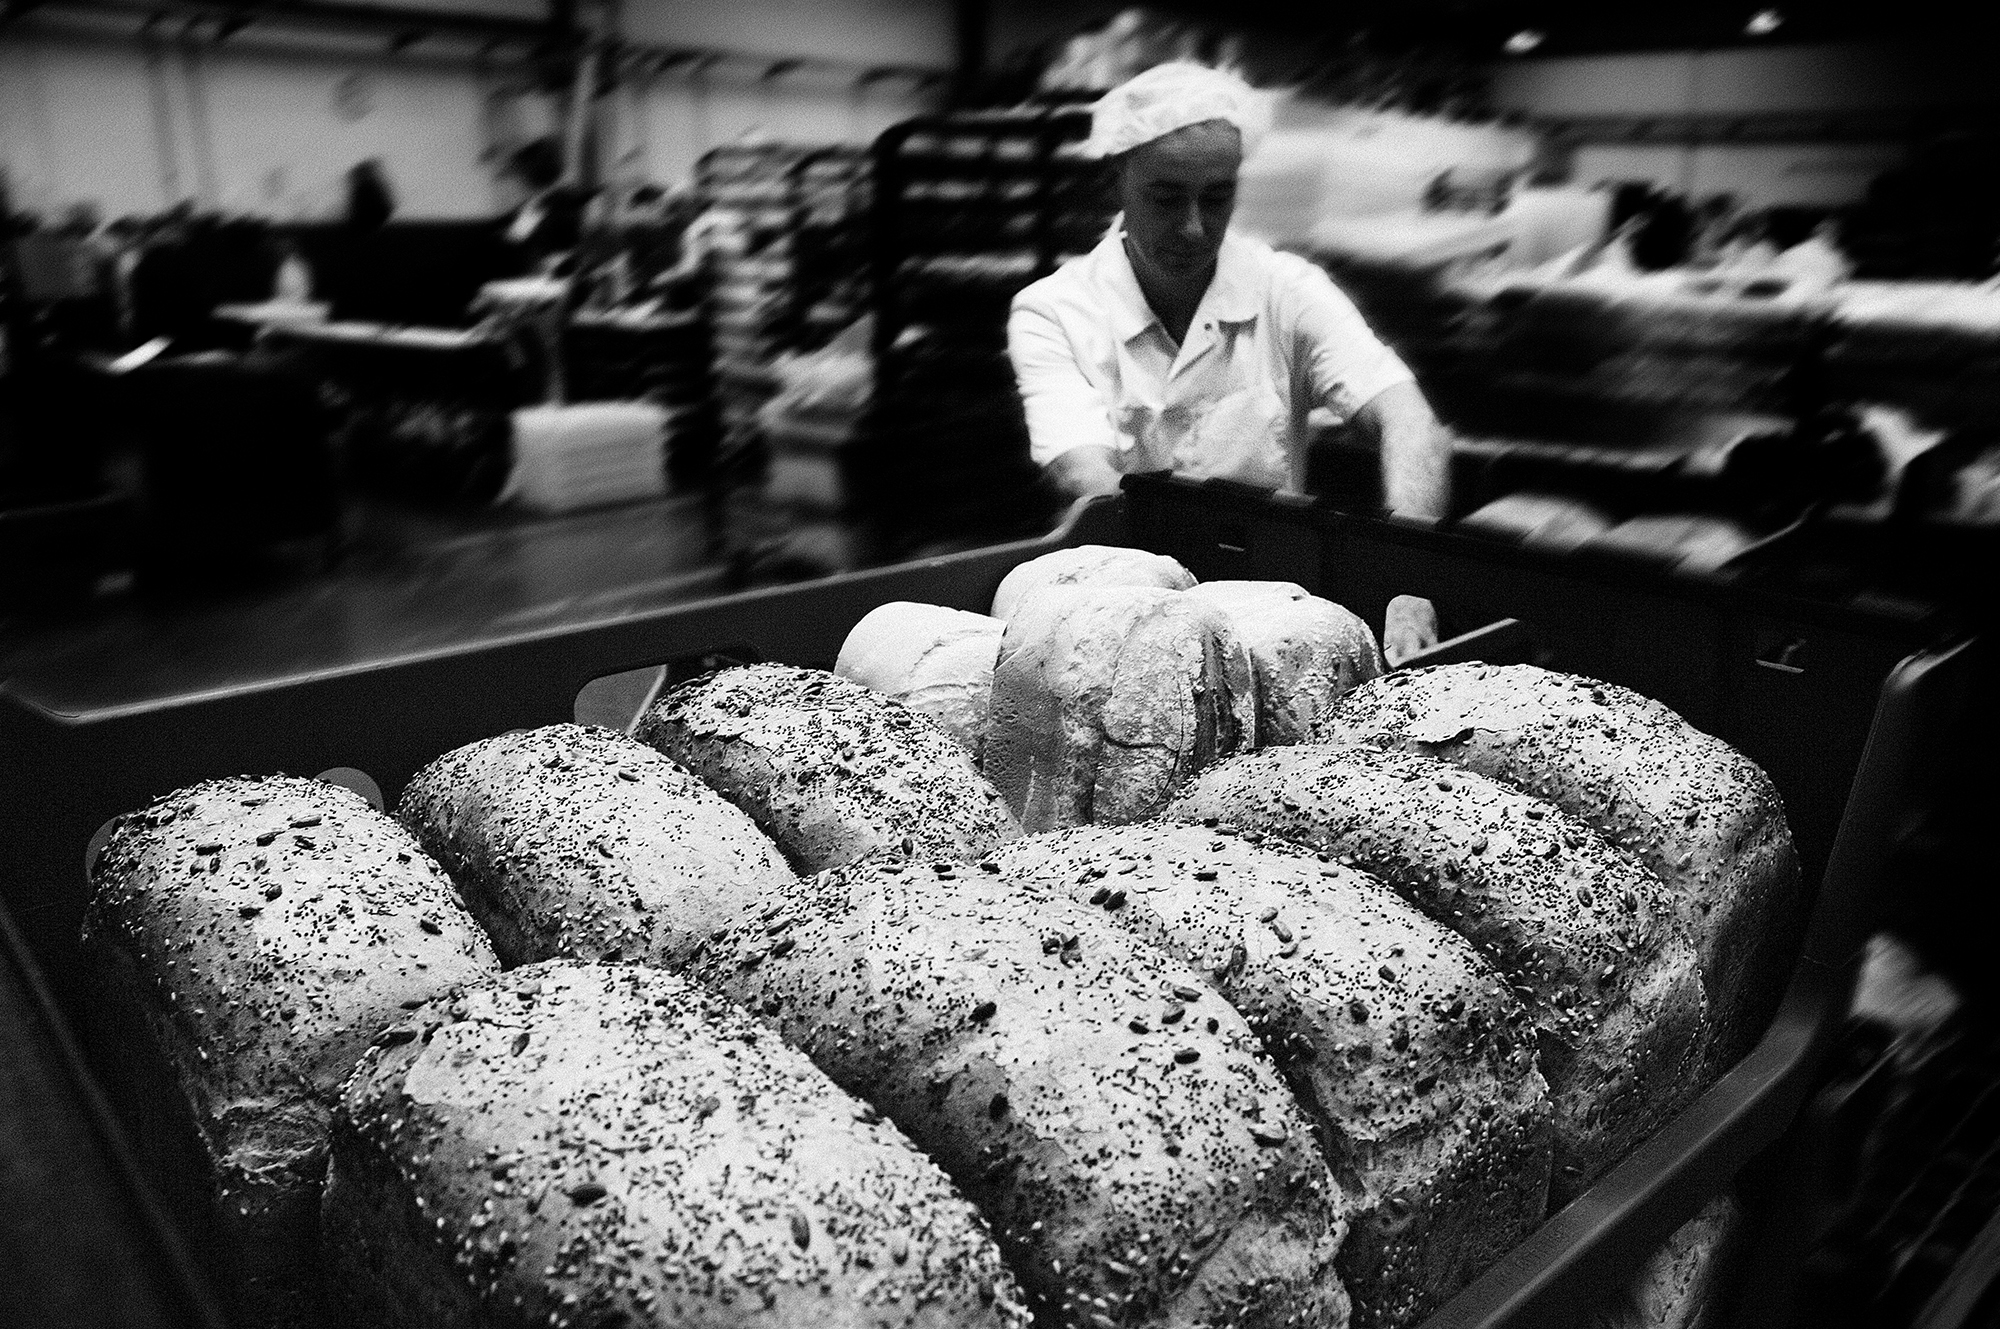 Documentary style portrait of a baker